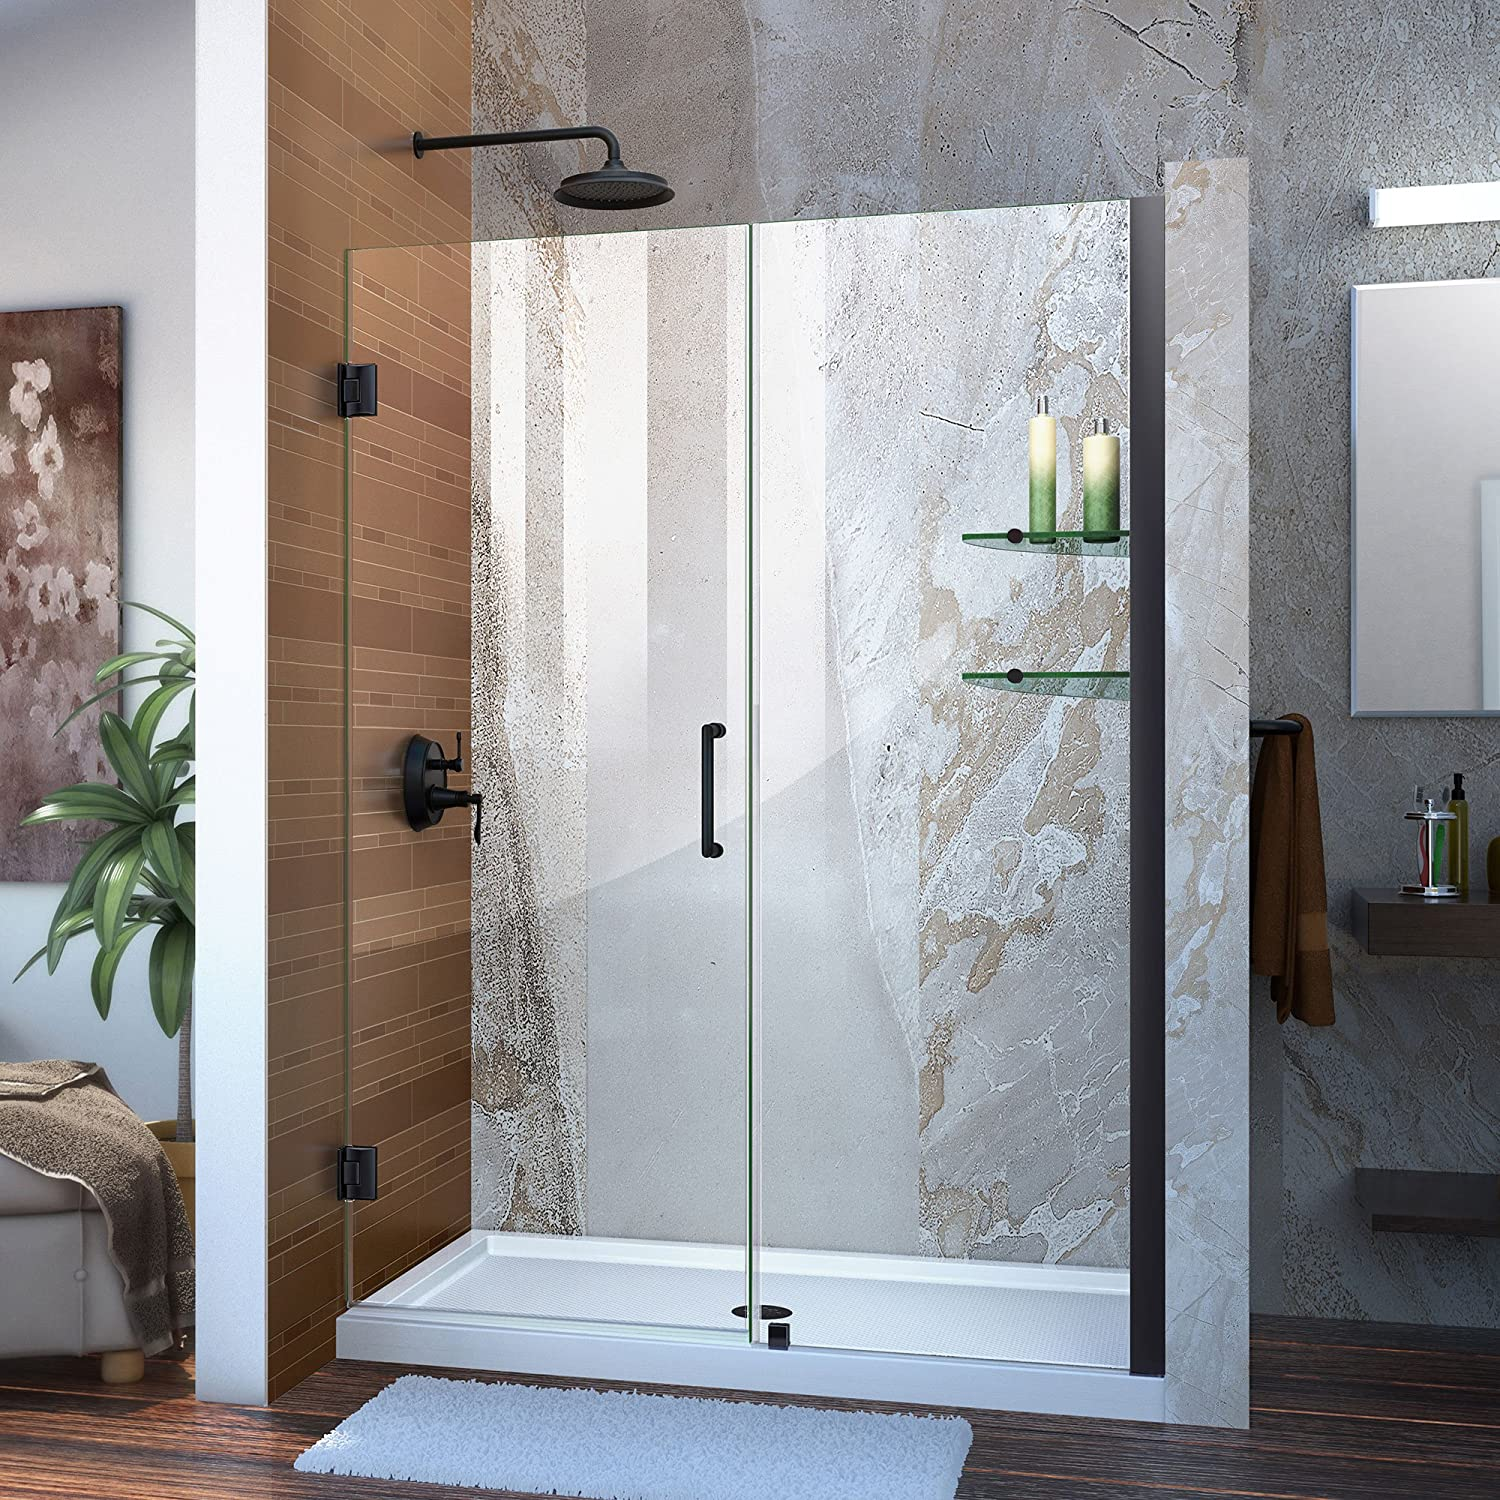 DreamLine Unidoor Min 52 in. to Max 53 in. Frameless Hinged Shower, Clear 3 8 in. Glass Door, Satin Black Finish, SHDR-20527210S-09, 55-56 W x 72 H,